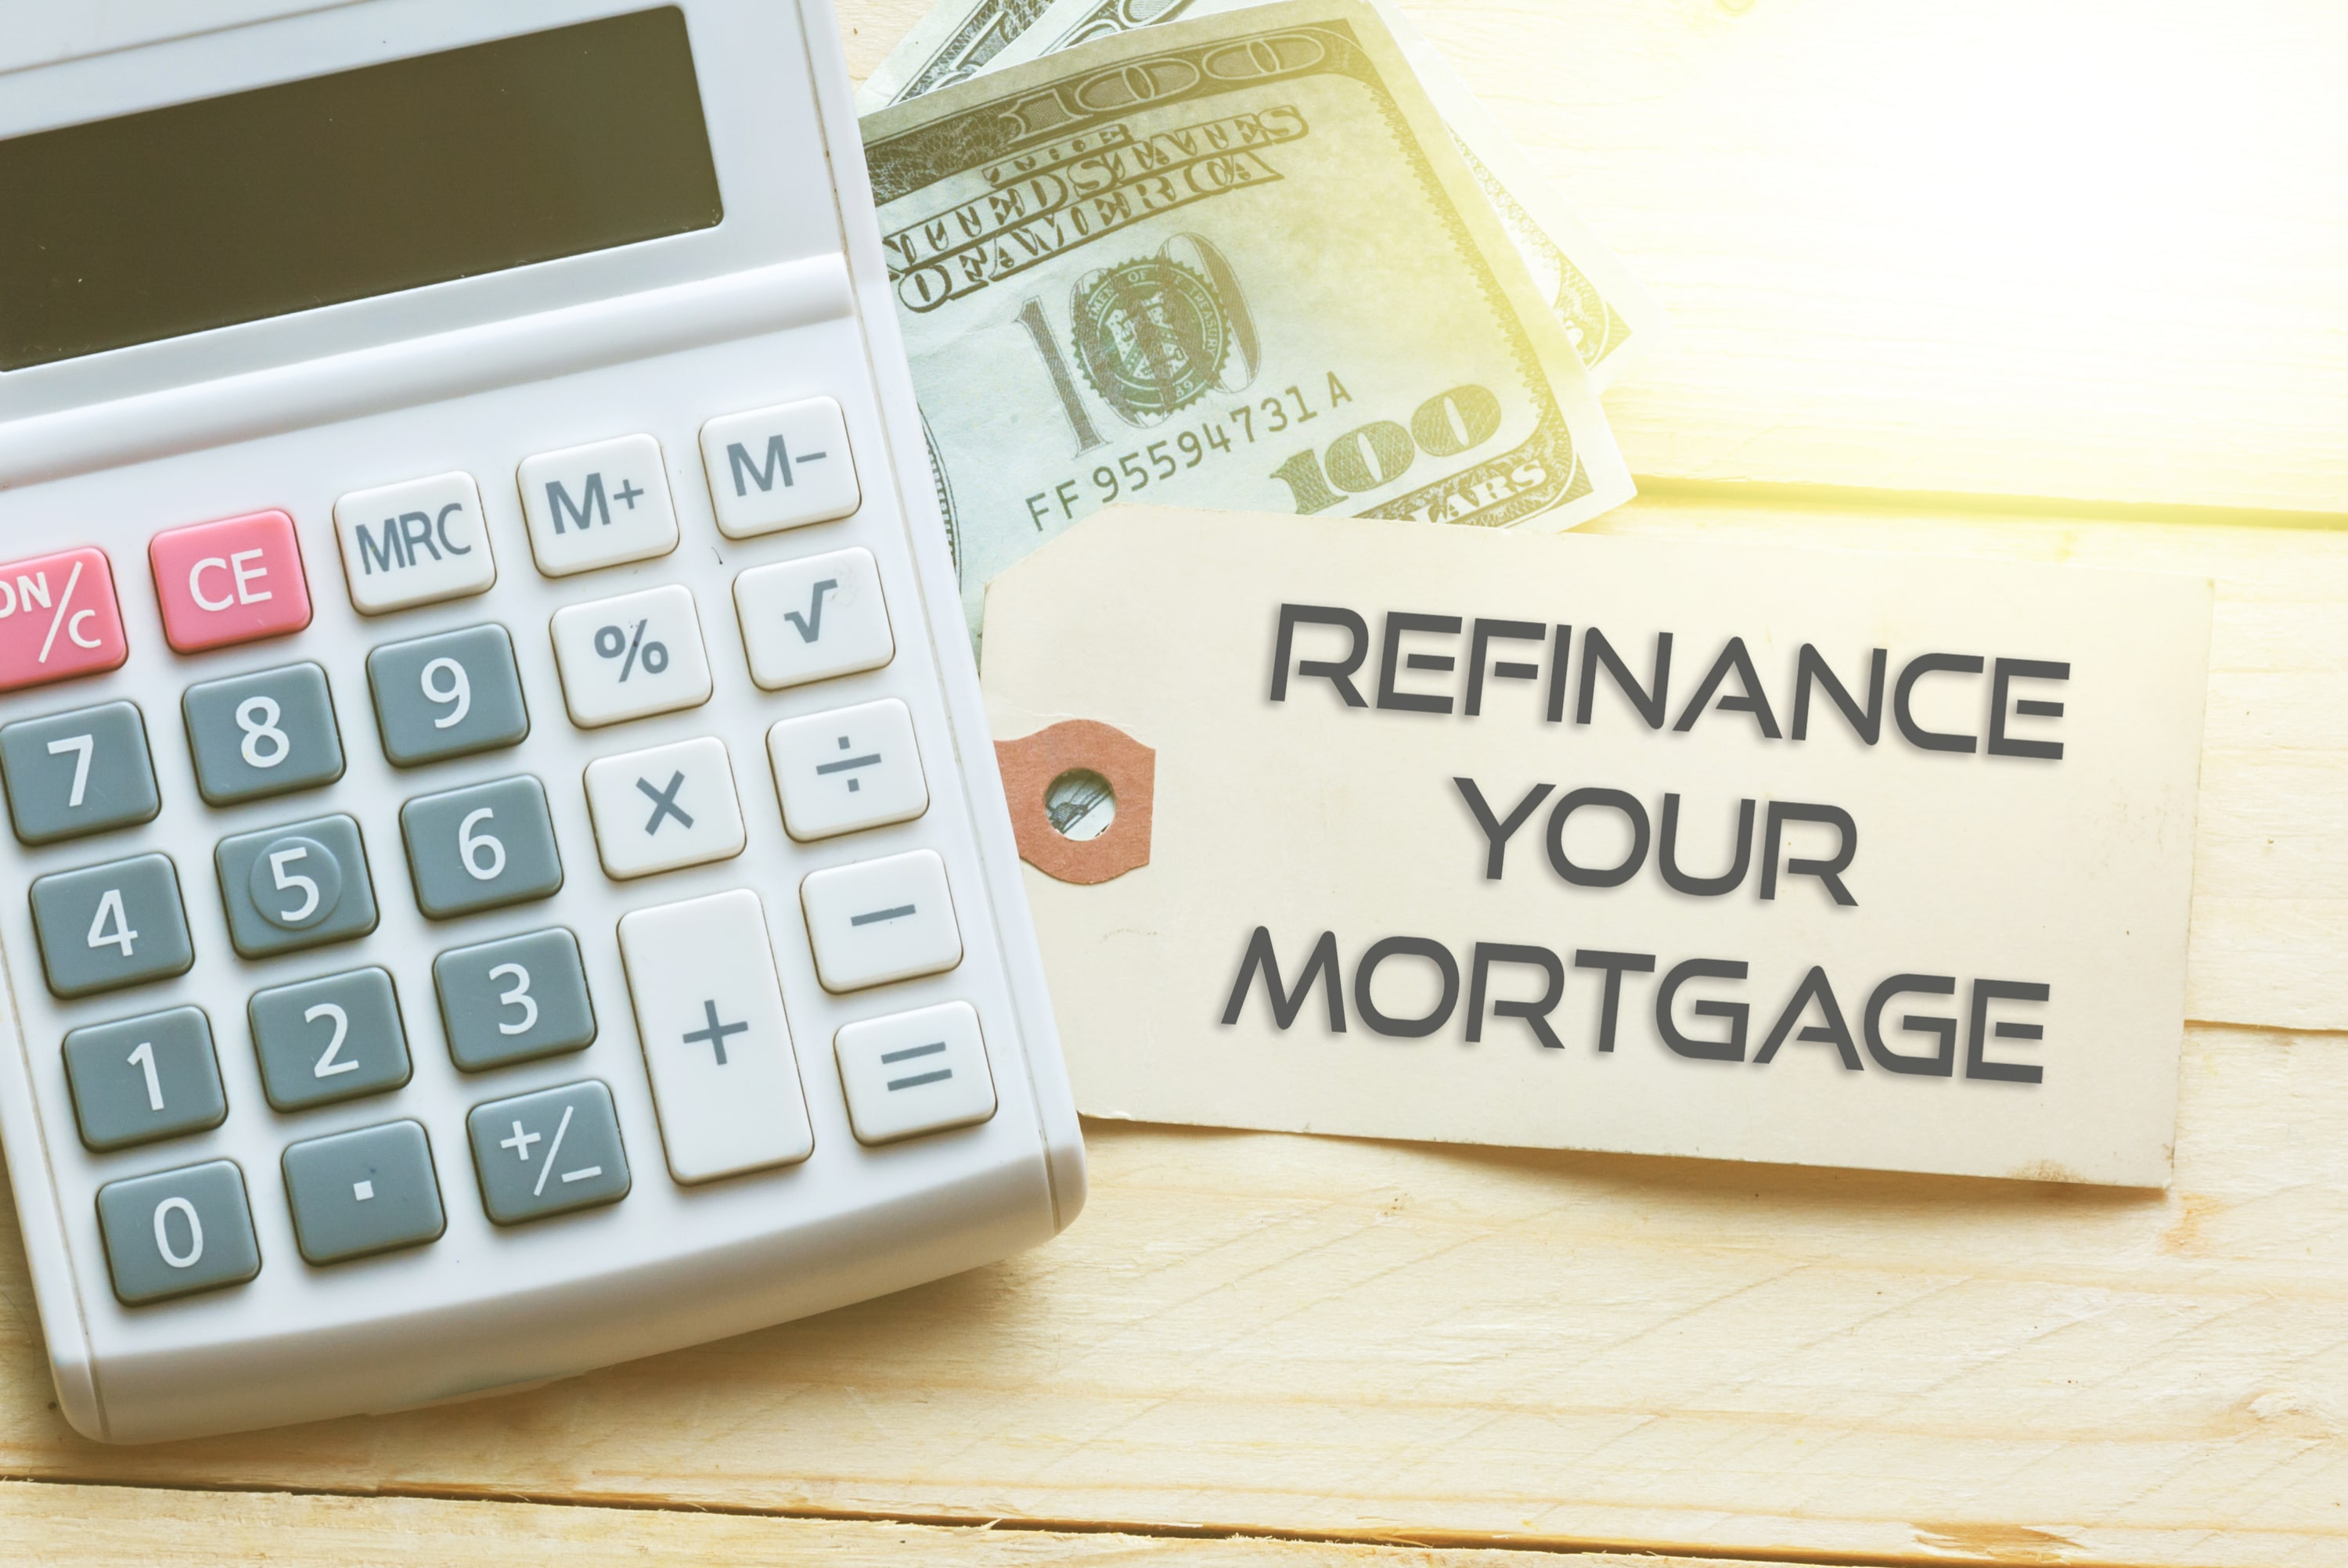 refinance-mortgage-home Usual Answers to Home Mortgage in Pune